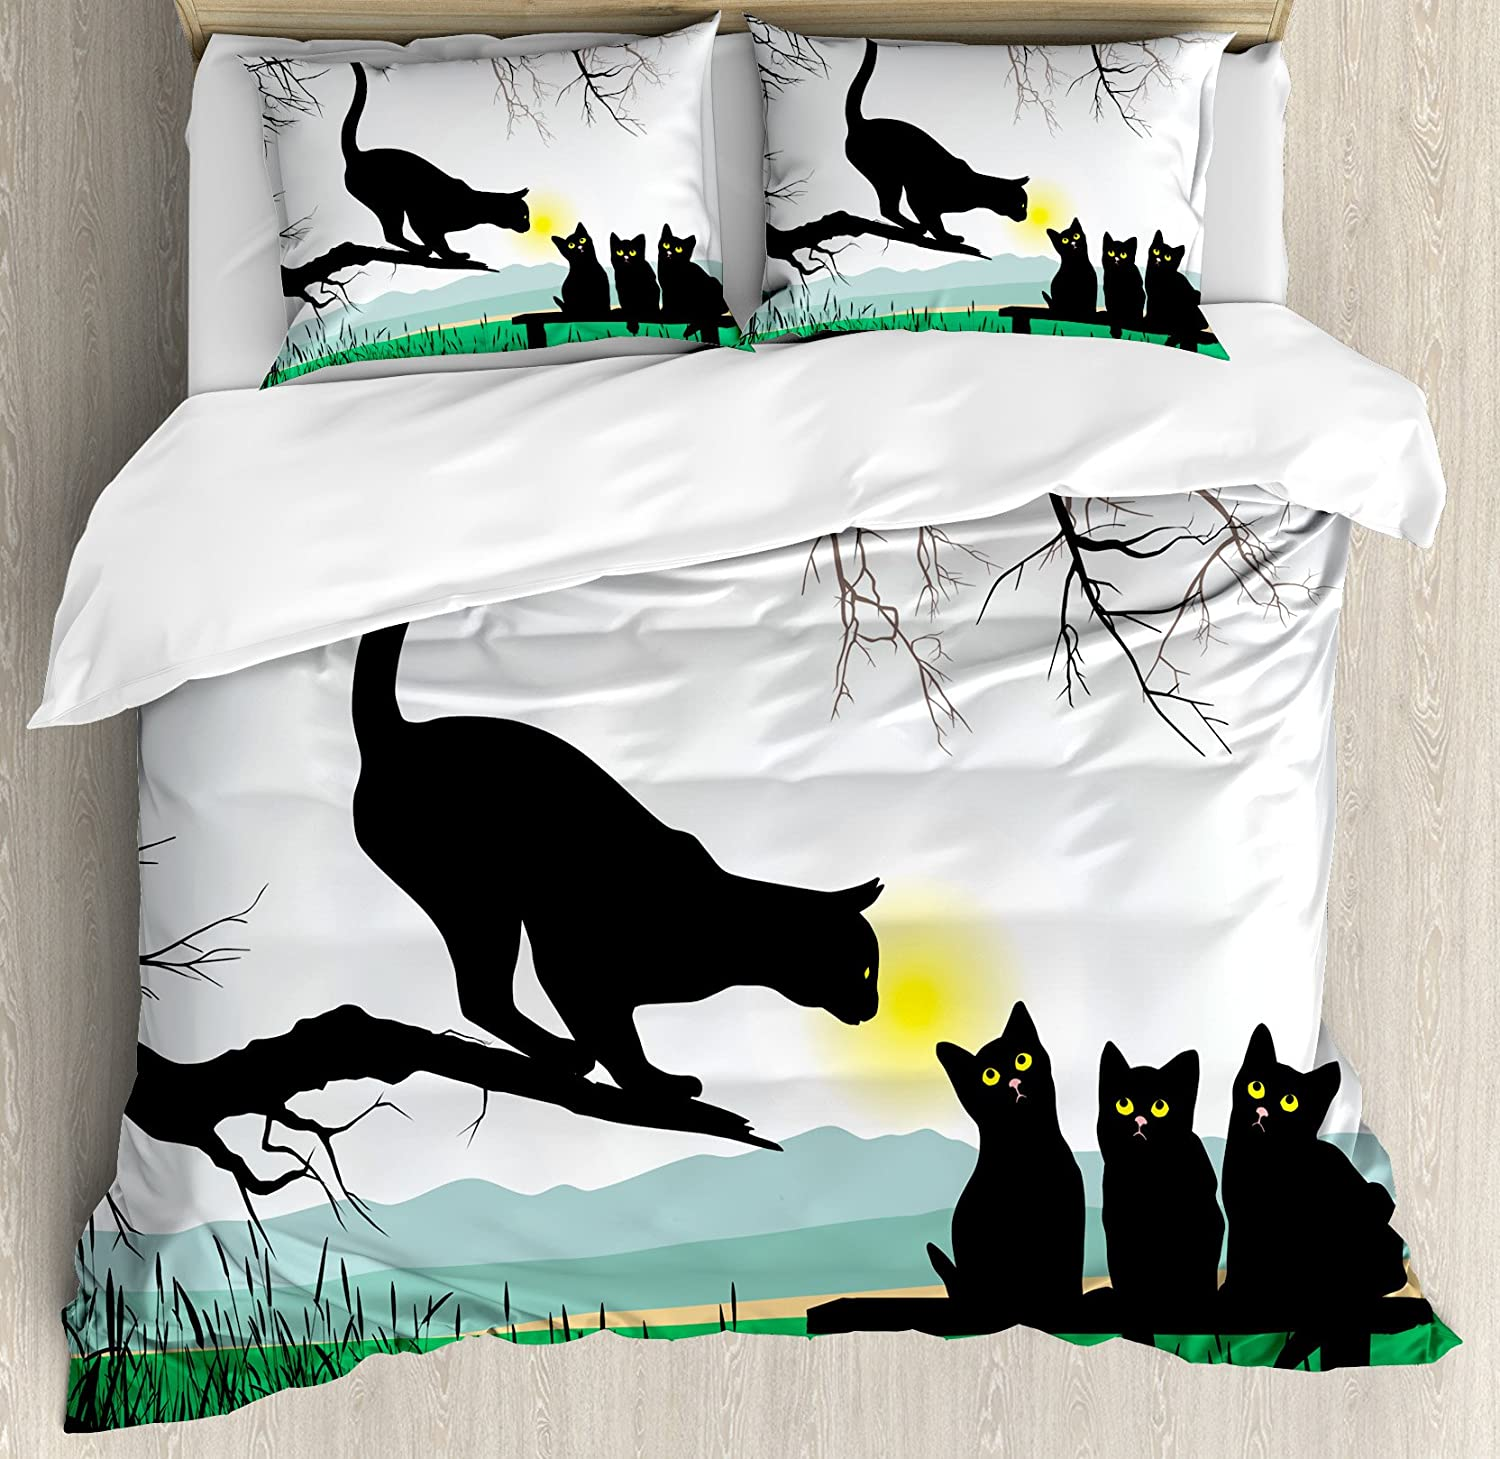 Ambesonne Cat Duvet Cover Set, Mother Cat on Tree Branch and Baby Kittens in Park Best Friends I Love My Kitty Graphic, Decorative 3 Piece Bedding Set with 2 Pillow Shams, Queen Size, Black Green